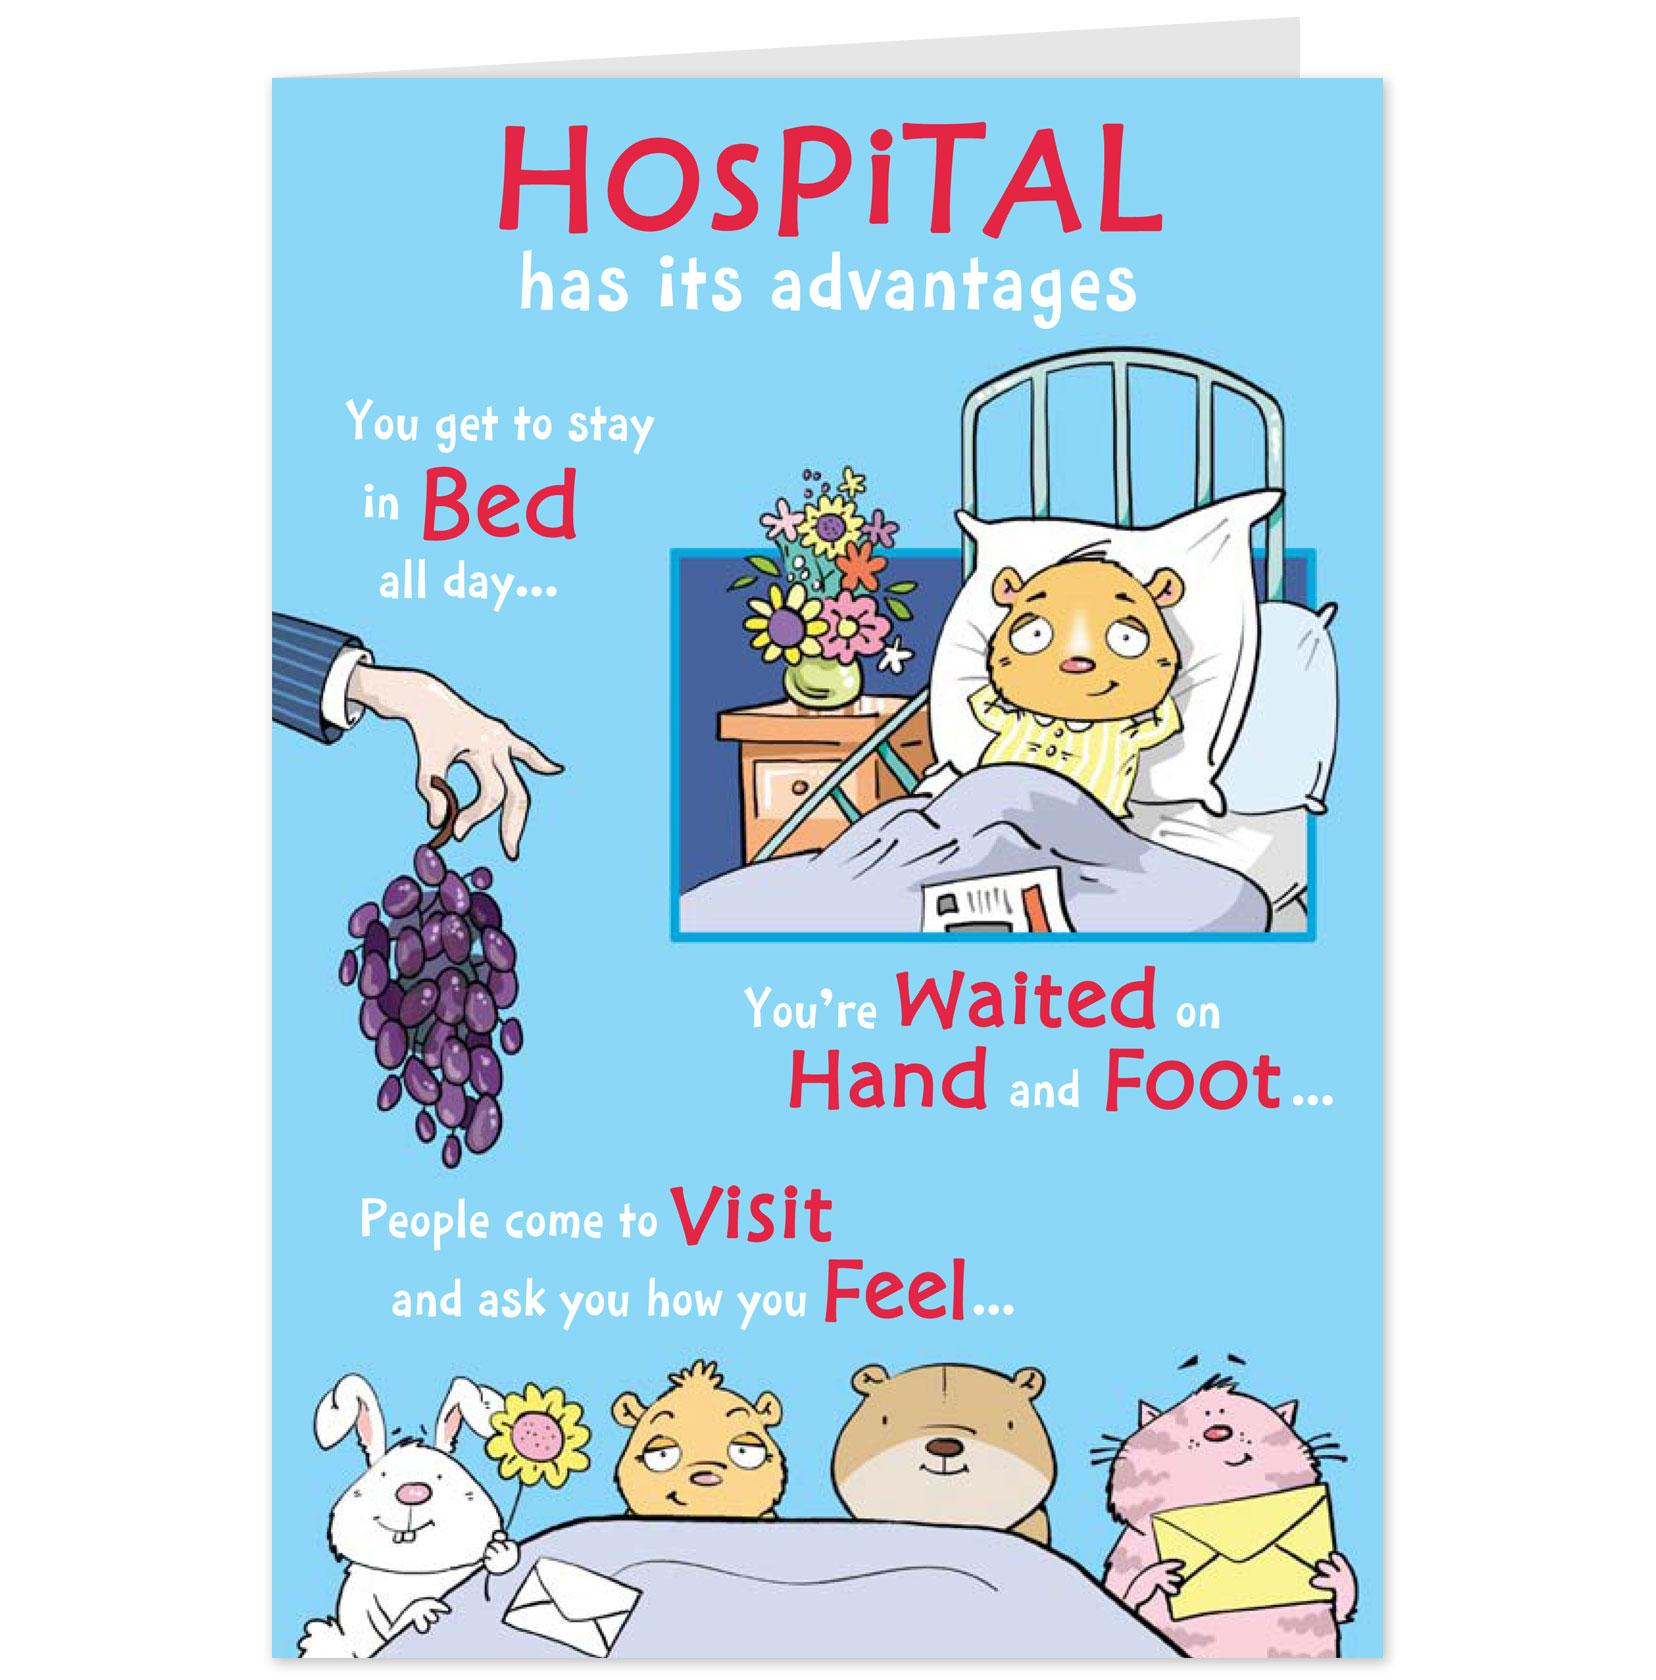 Get Better Quotes Funny: Get Well Hospital Funny Quotes. QuotesGram